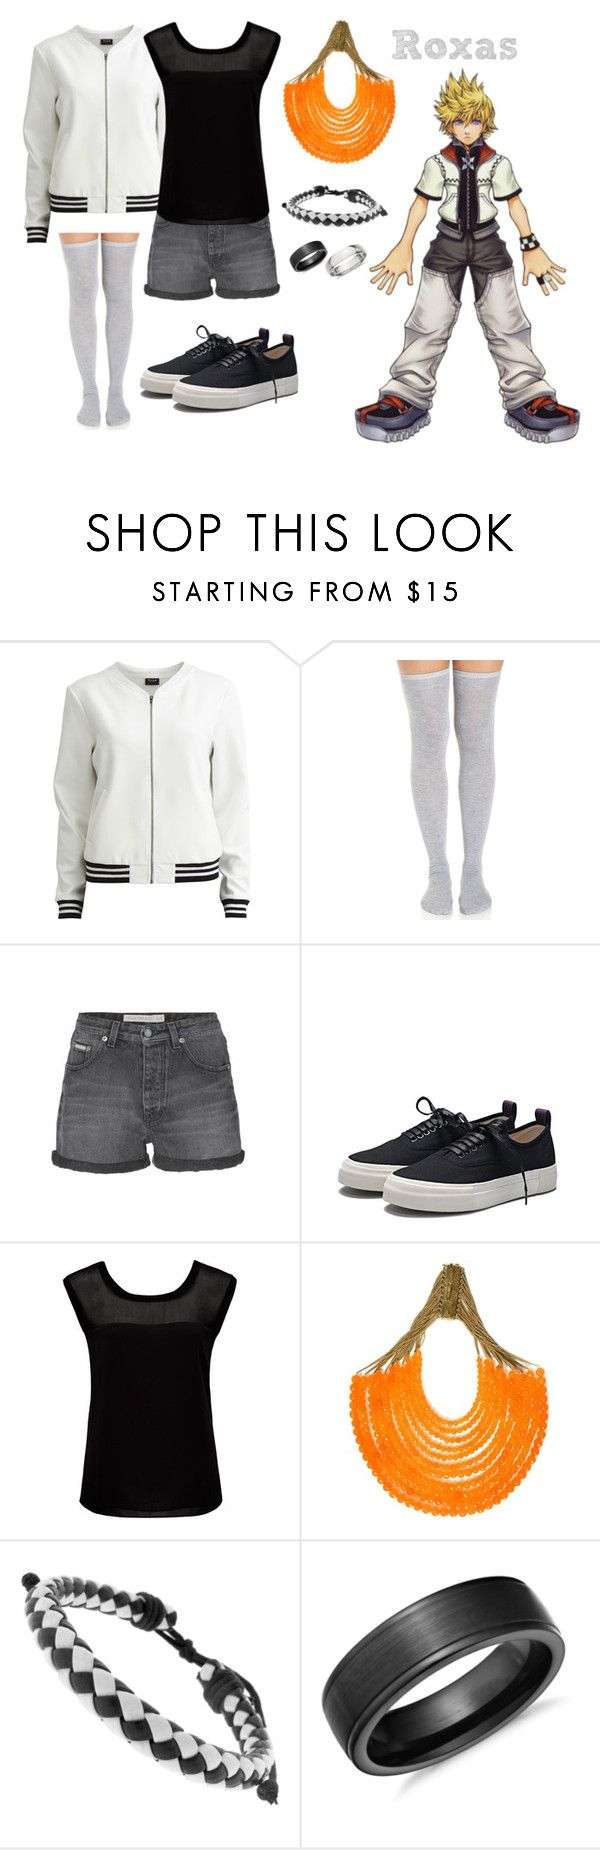 Kingdom Hearts Roxas Inspired Outfit by rfacklam on Polyvore featuring Forever New, VILA, Calvin Klein Jeans, Eytys, Rosantica, Moise, Blue Nile, KingdomHearts, Roxas and kh